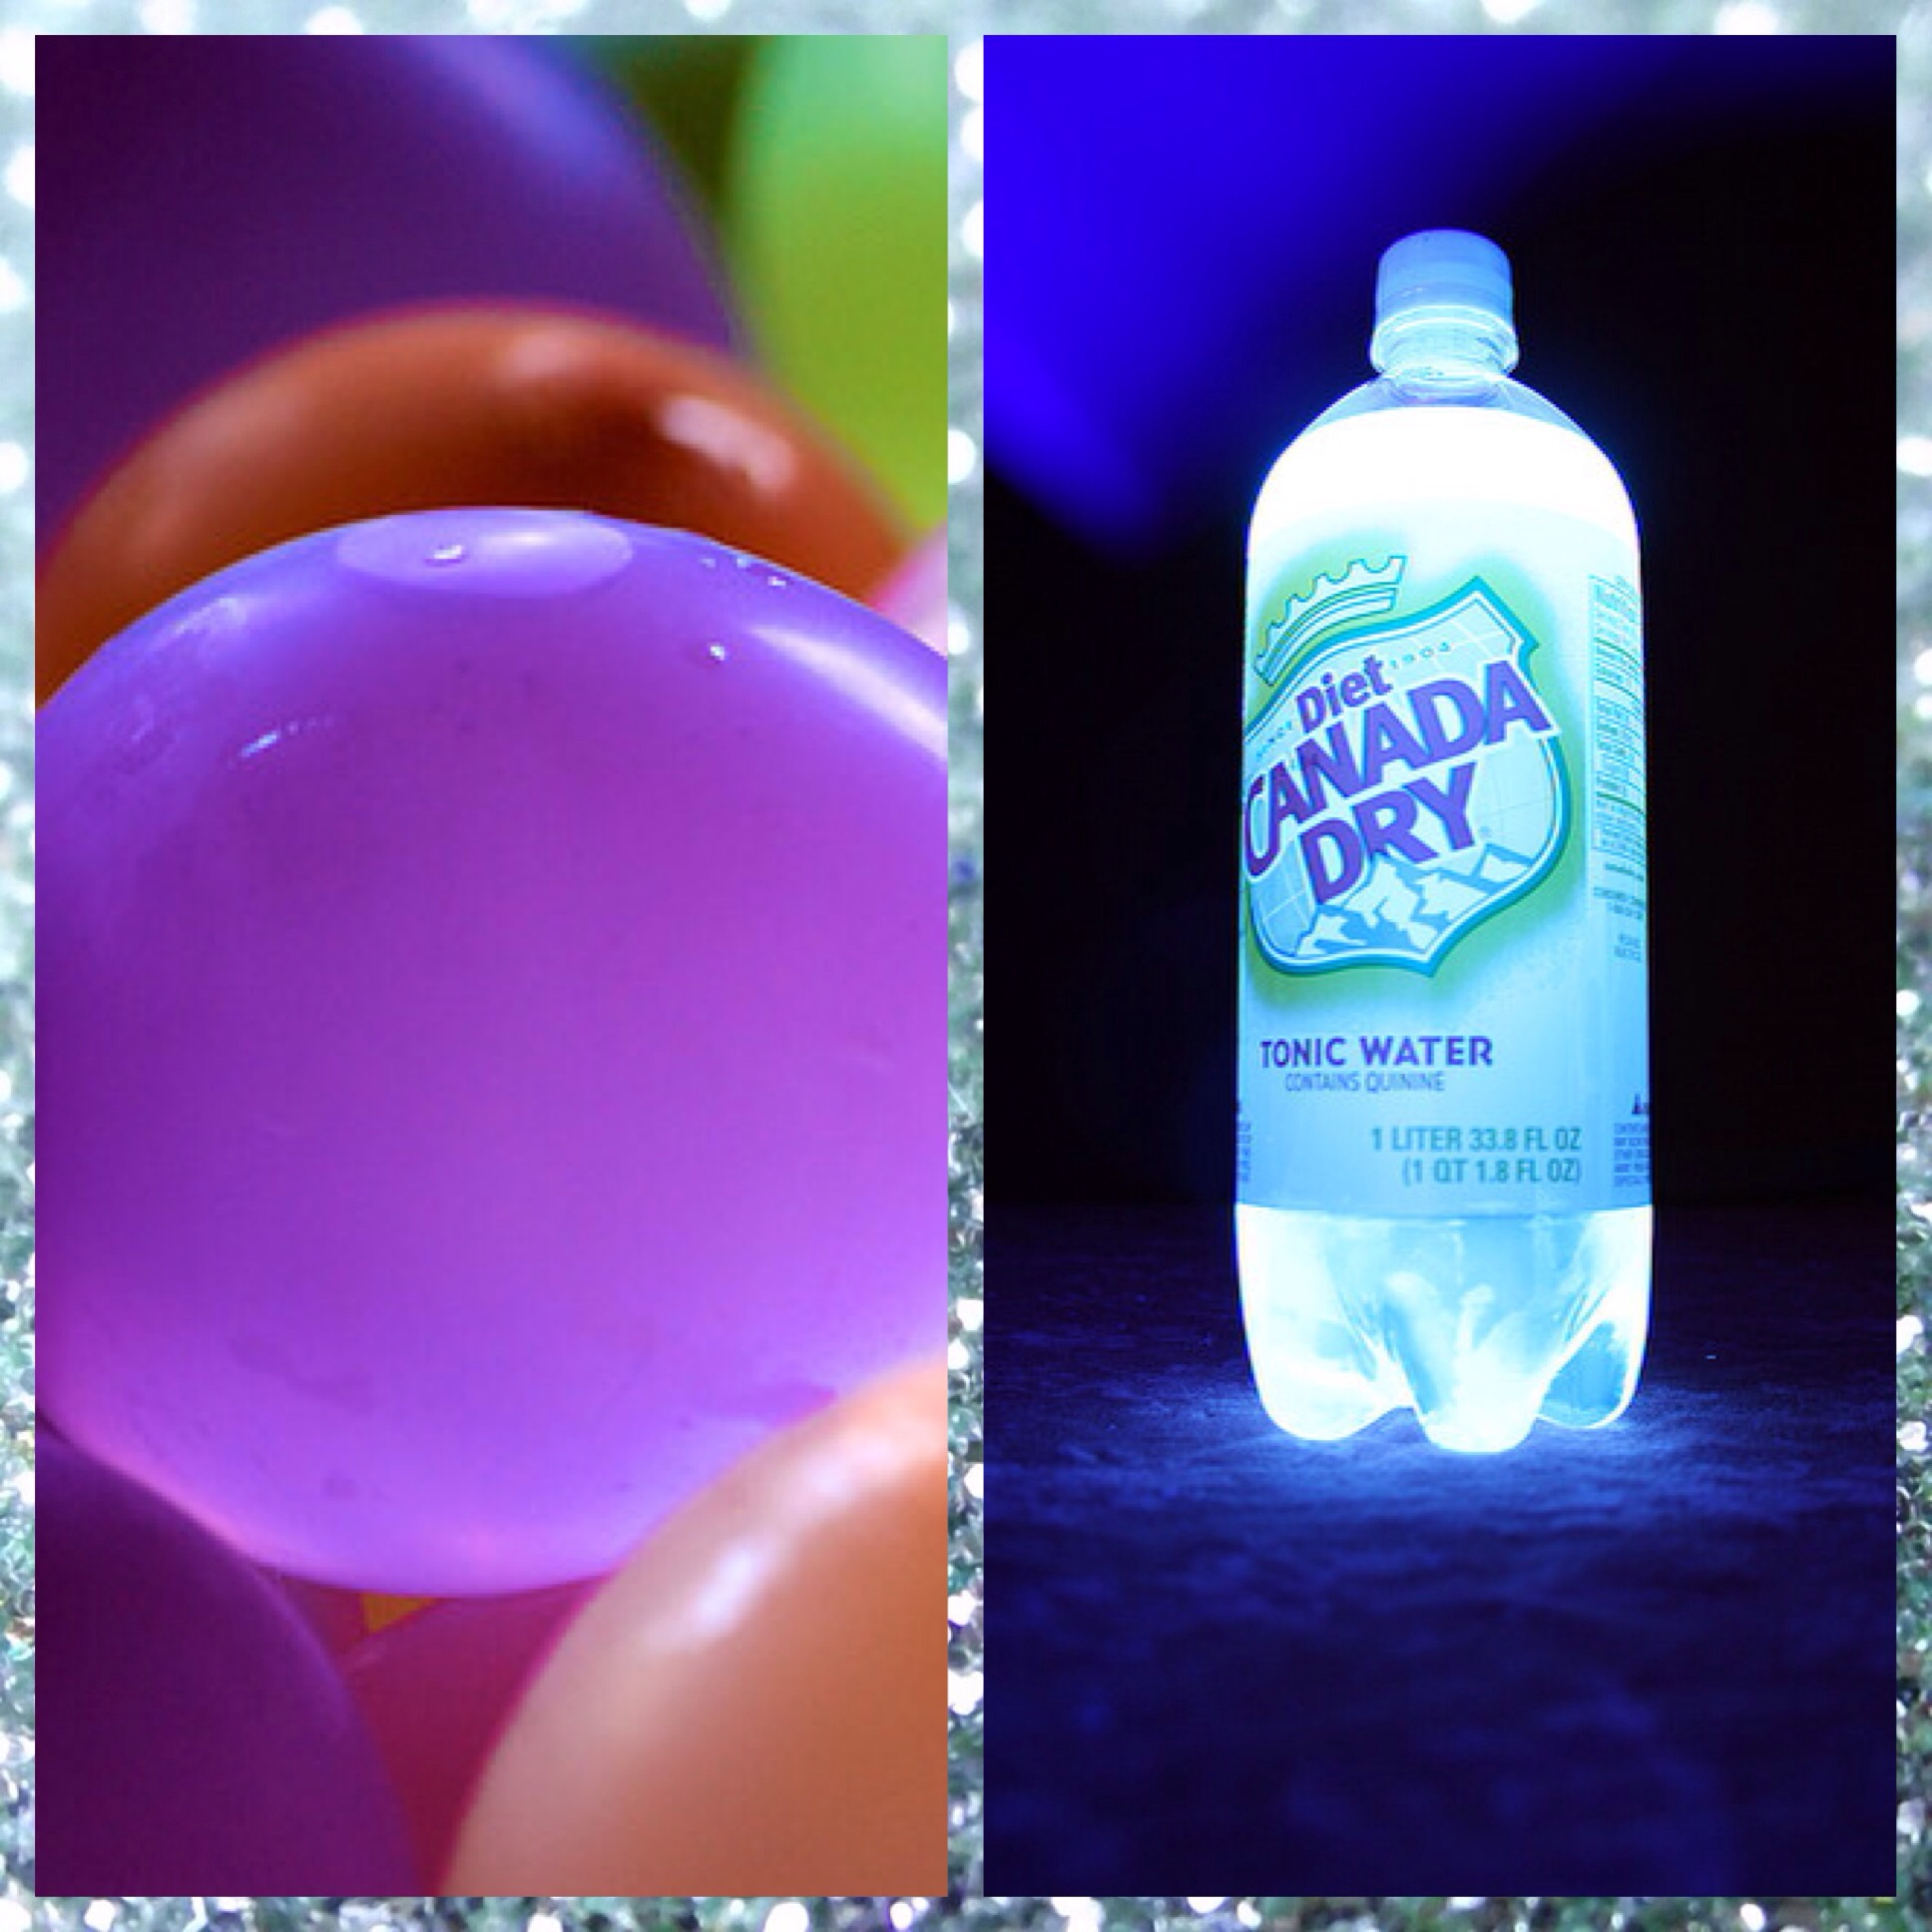 Glow in the dark water balloons - Water Balloons And Glowing Tonic Water